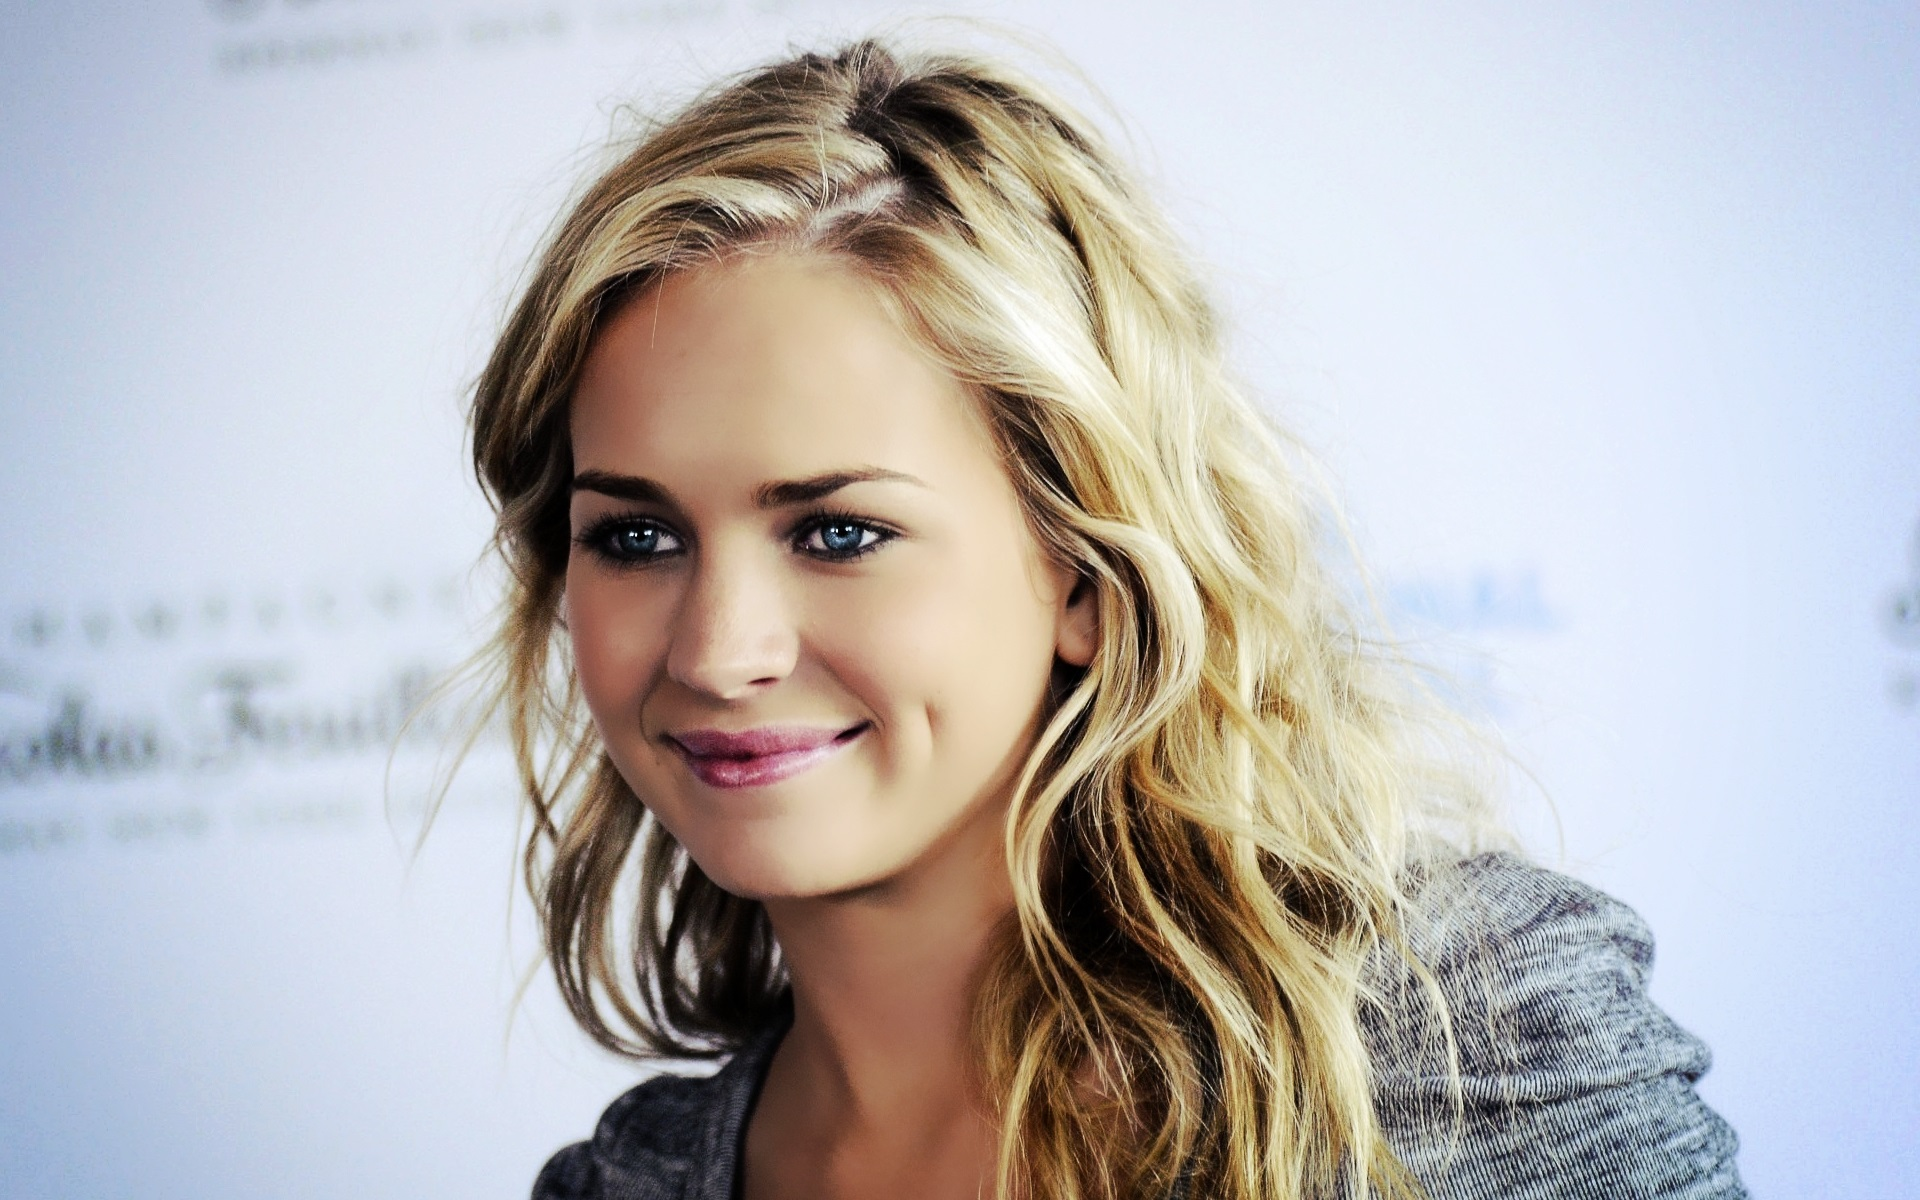 awesome britt robertson picture free download